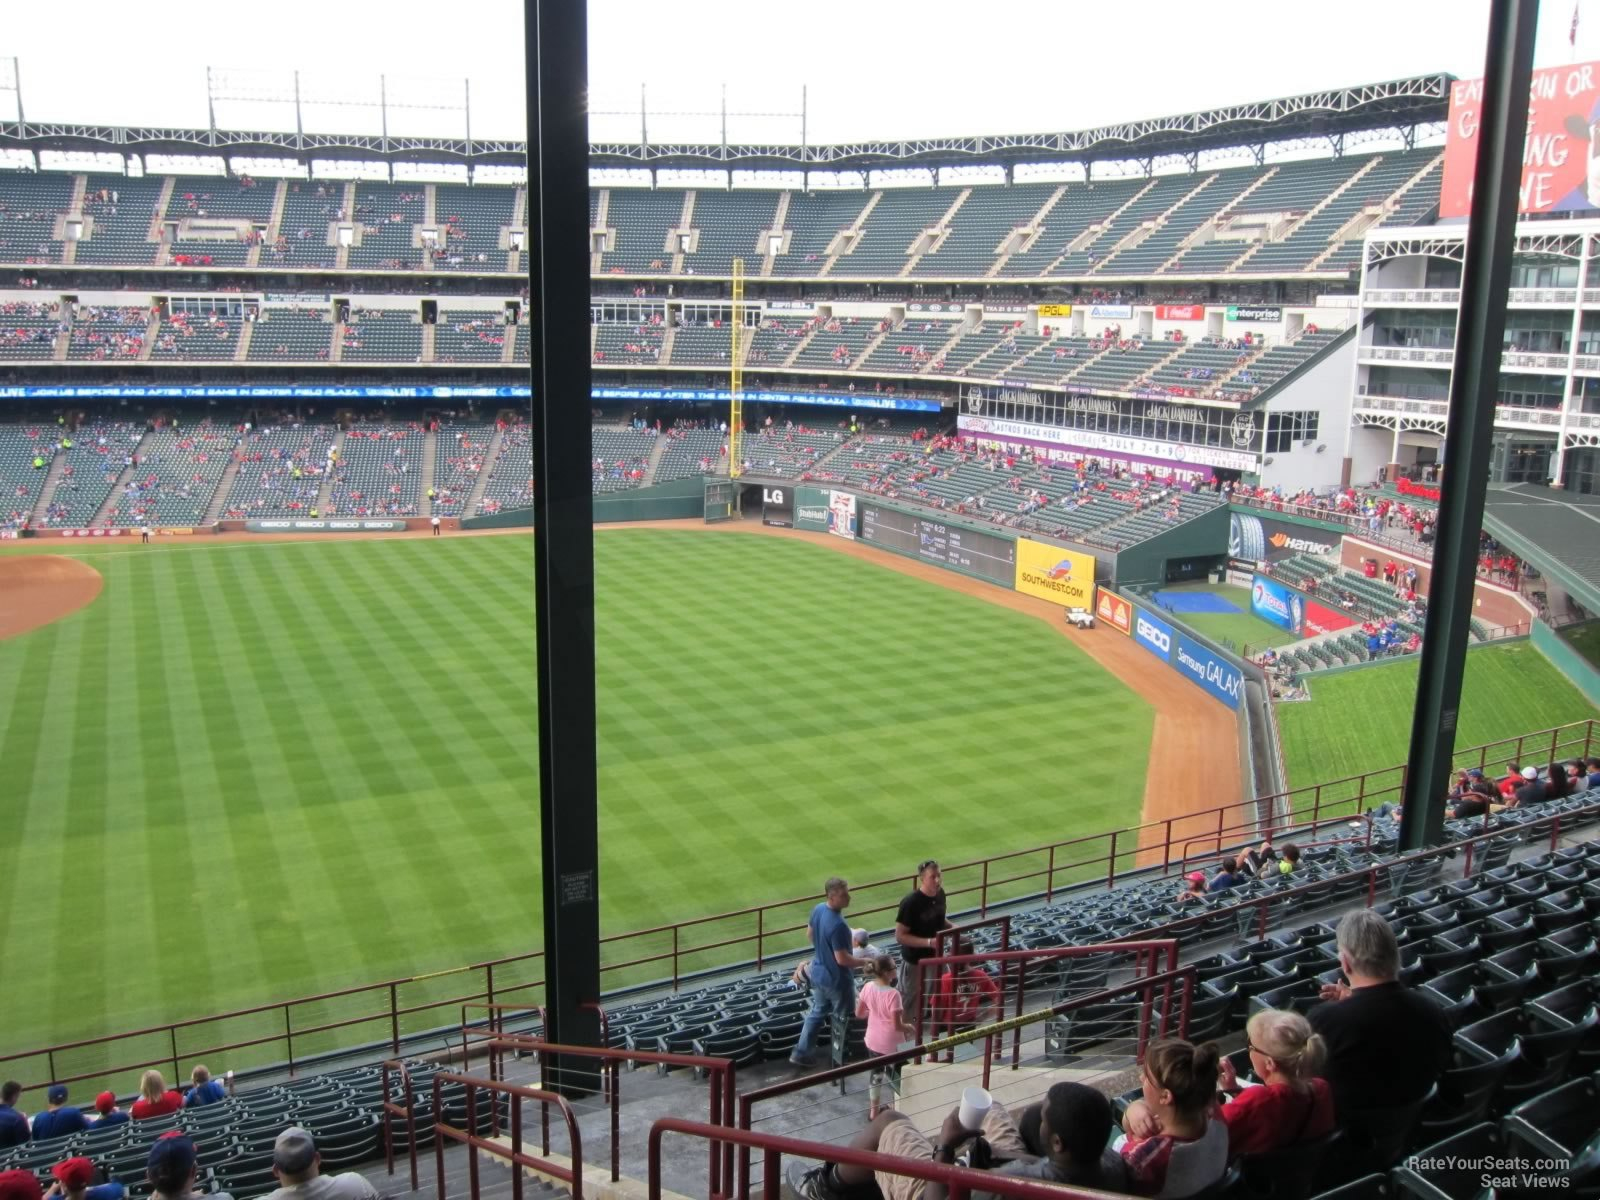 Texas Rangers Seating Chart All You Can Eat – Indaye - Texas Rangers Stadium Seating Map